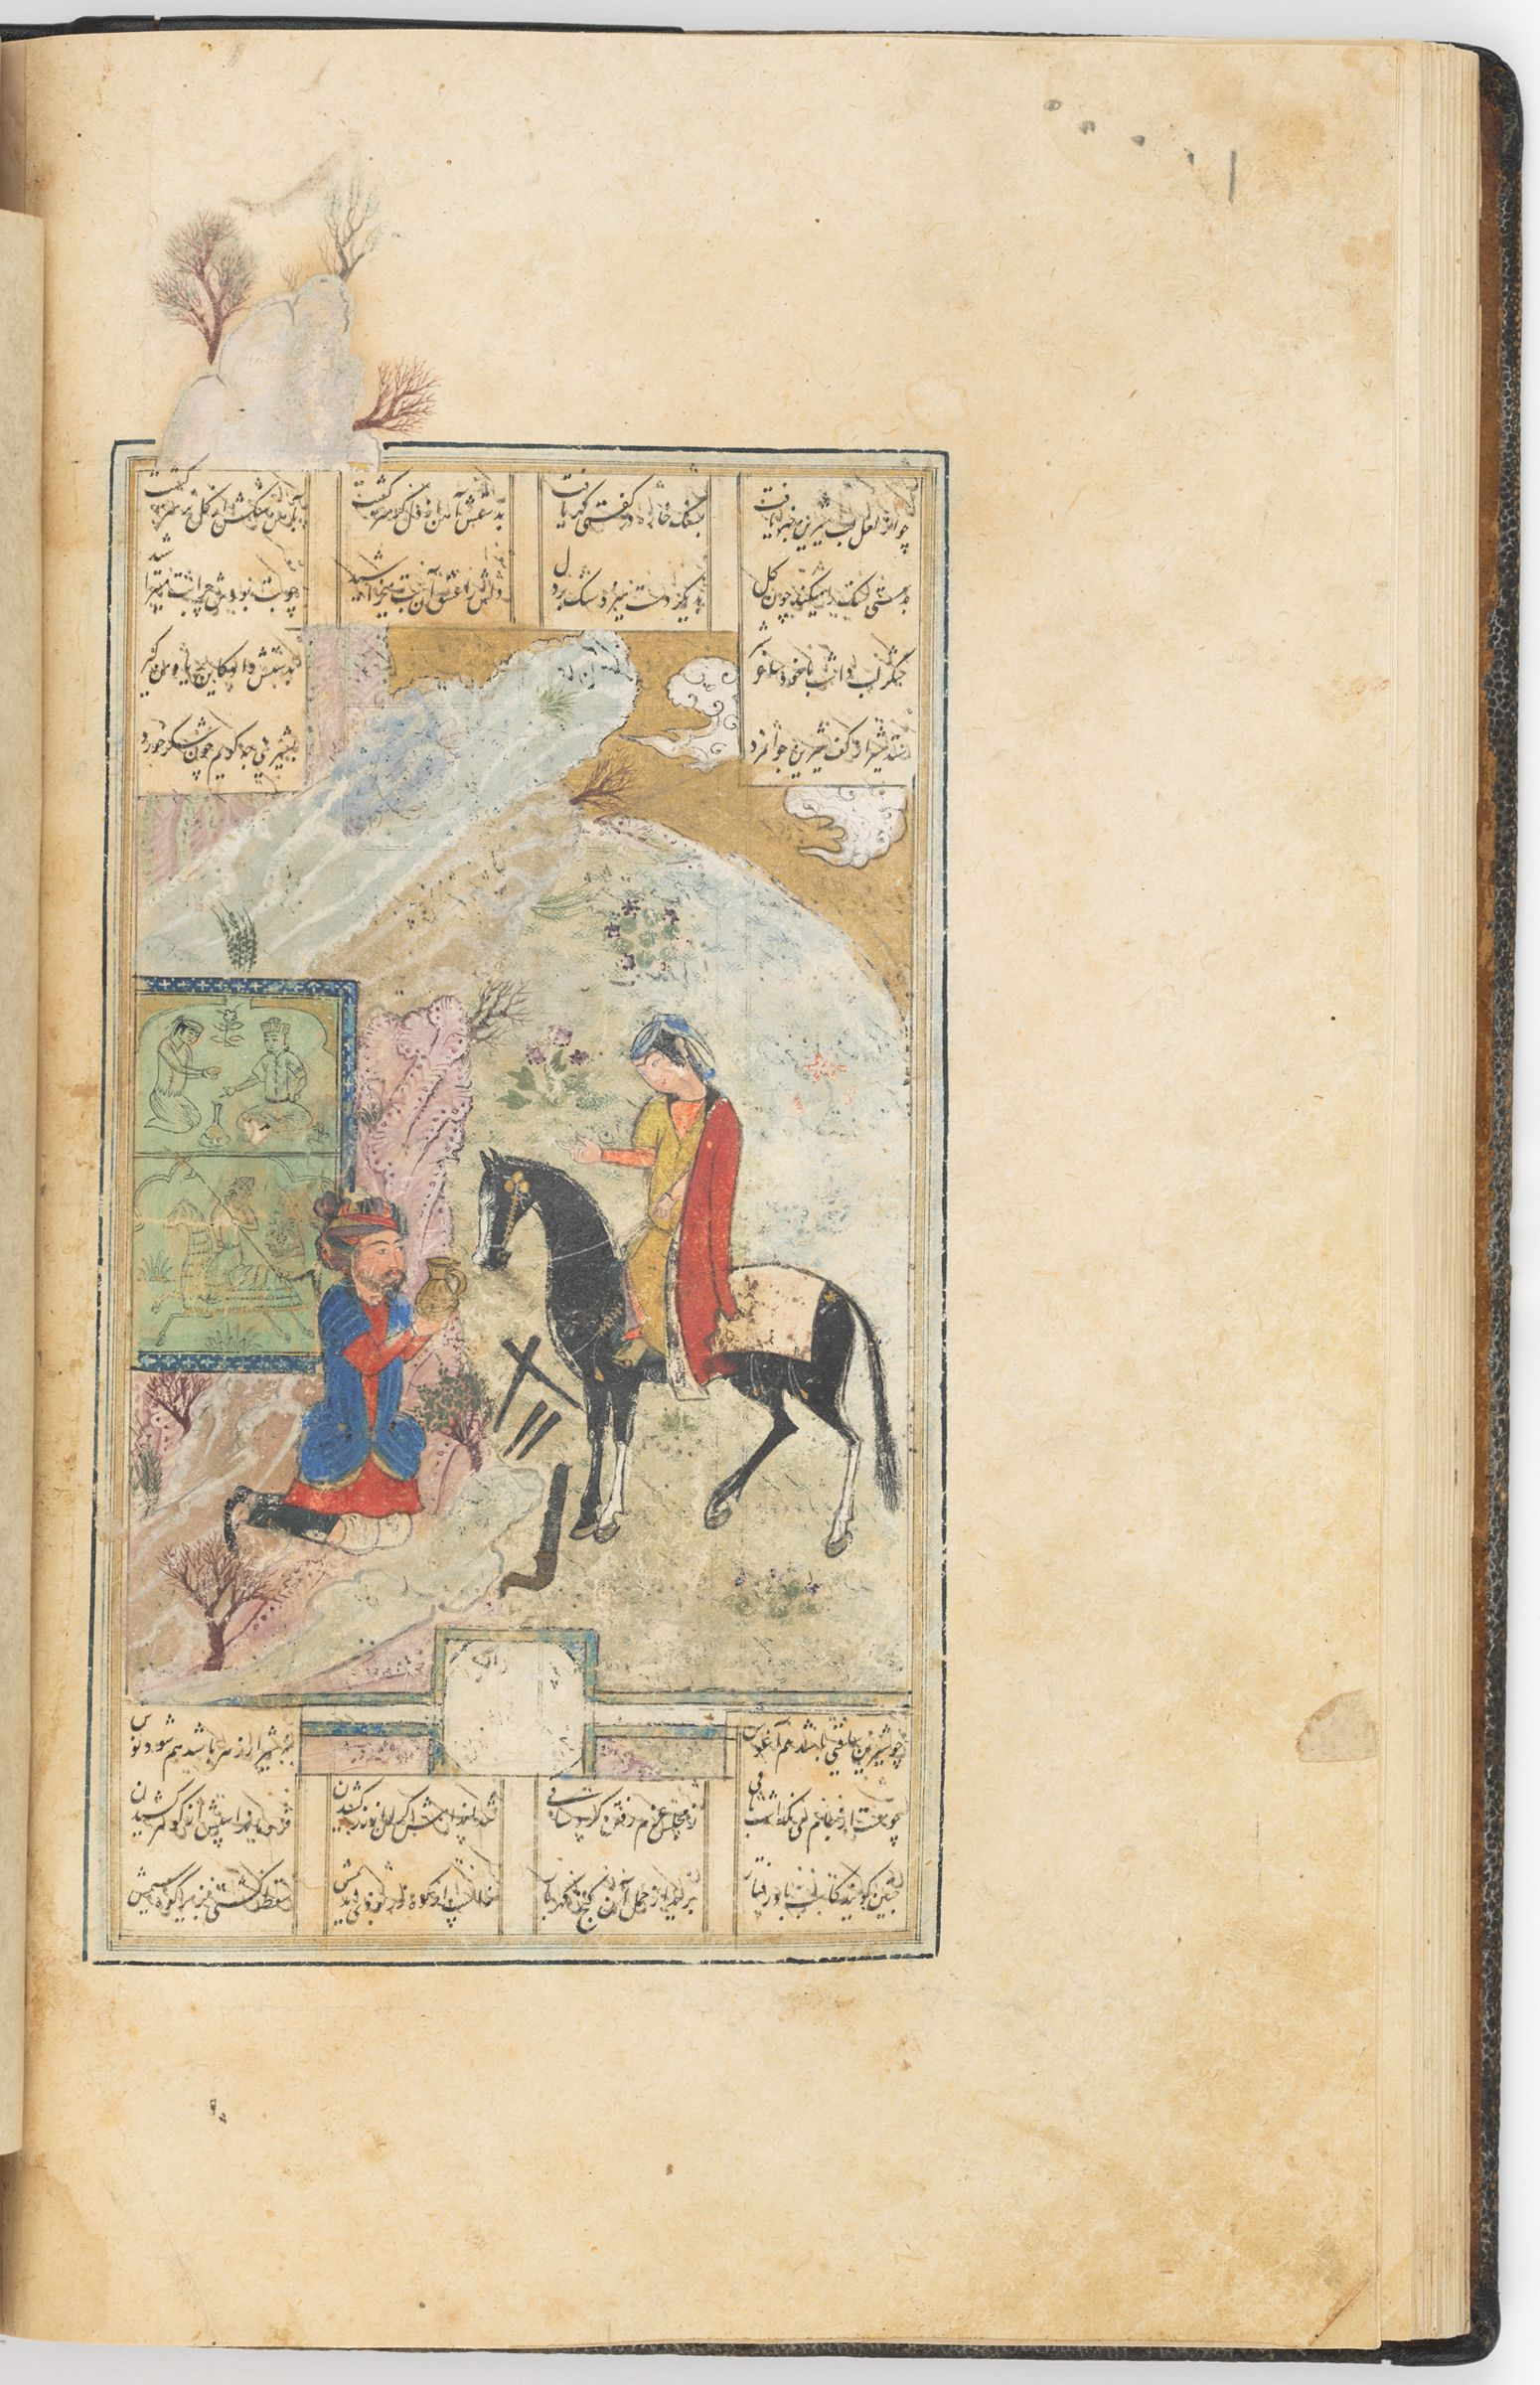 Shirin Goes To Mount Bistun And Meets Farhad (Text Recto; Painting Verso Of Folio 77), Painting From A Manuscript Of The Khamsa By Nizam